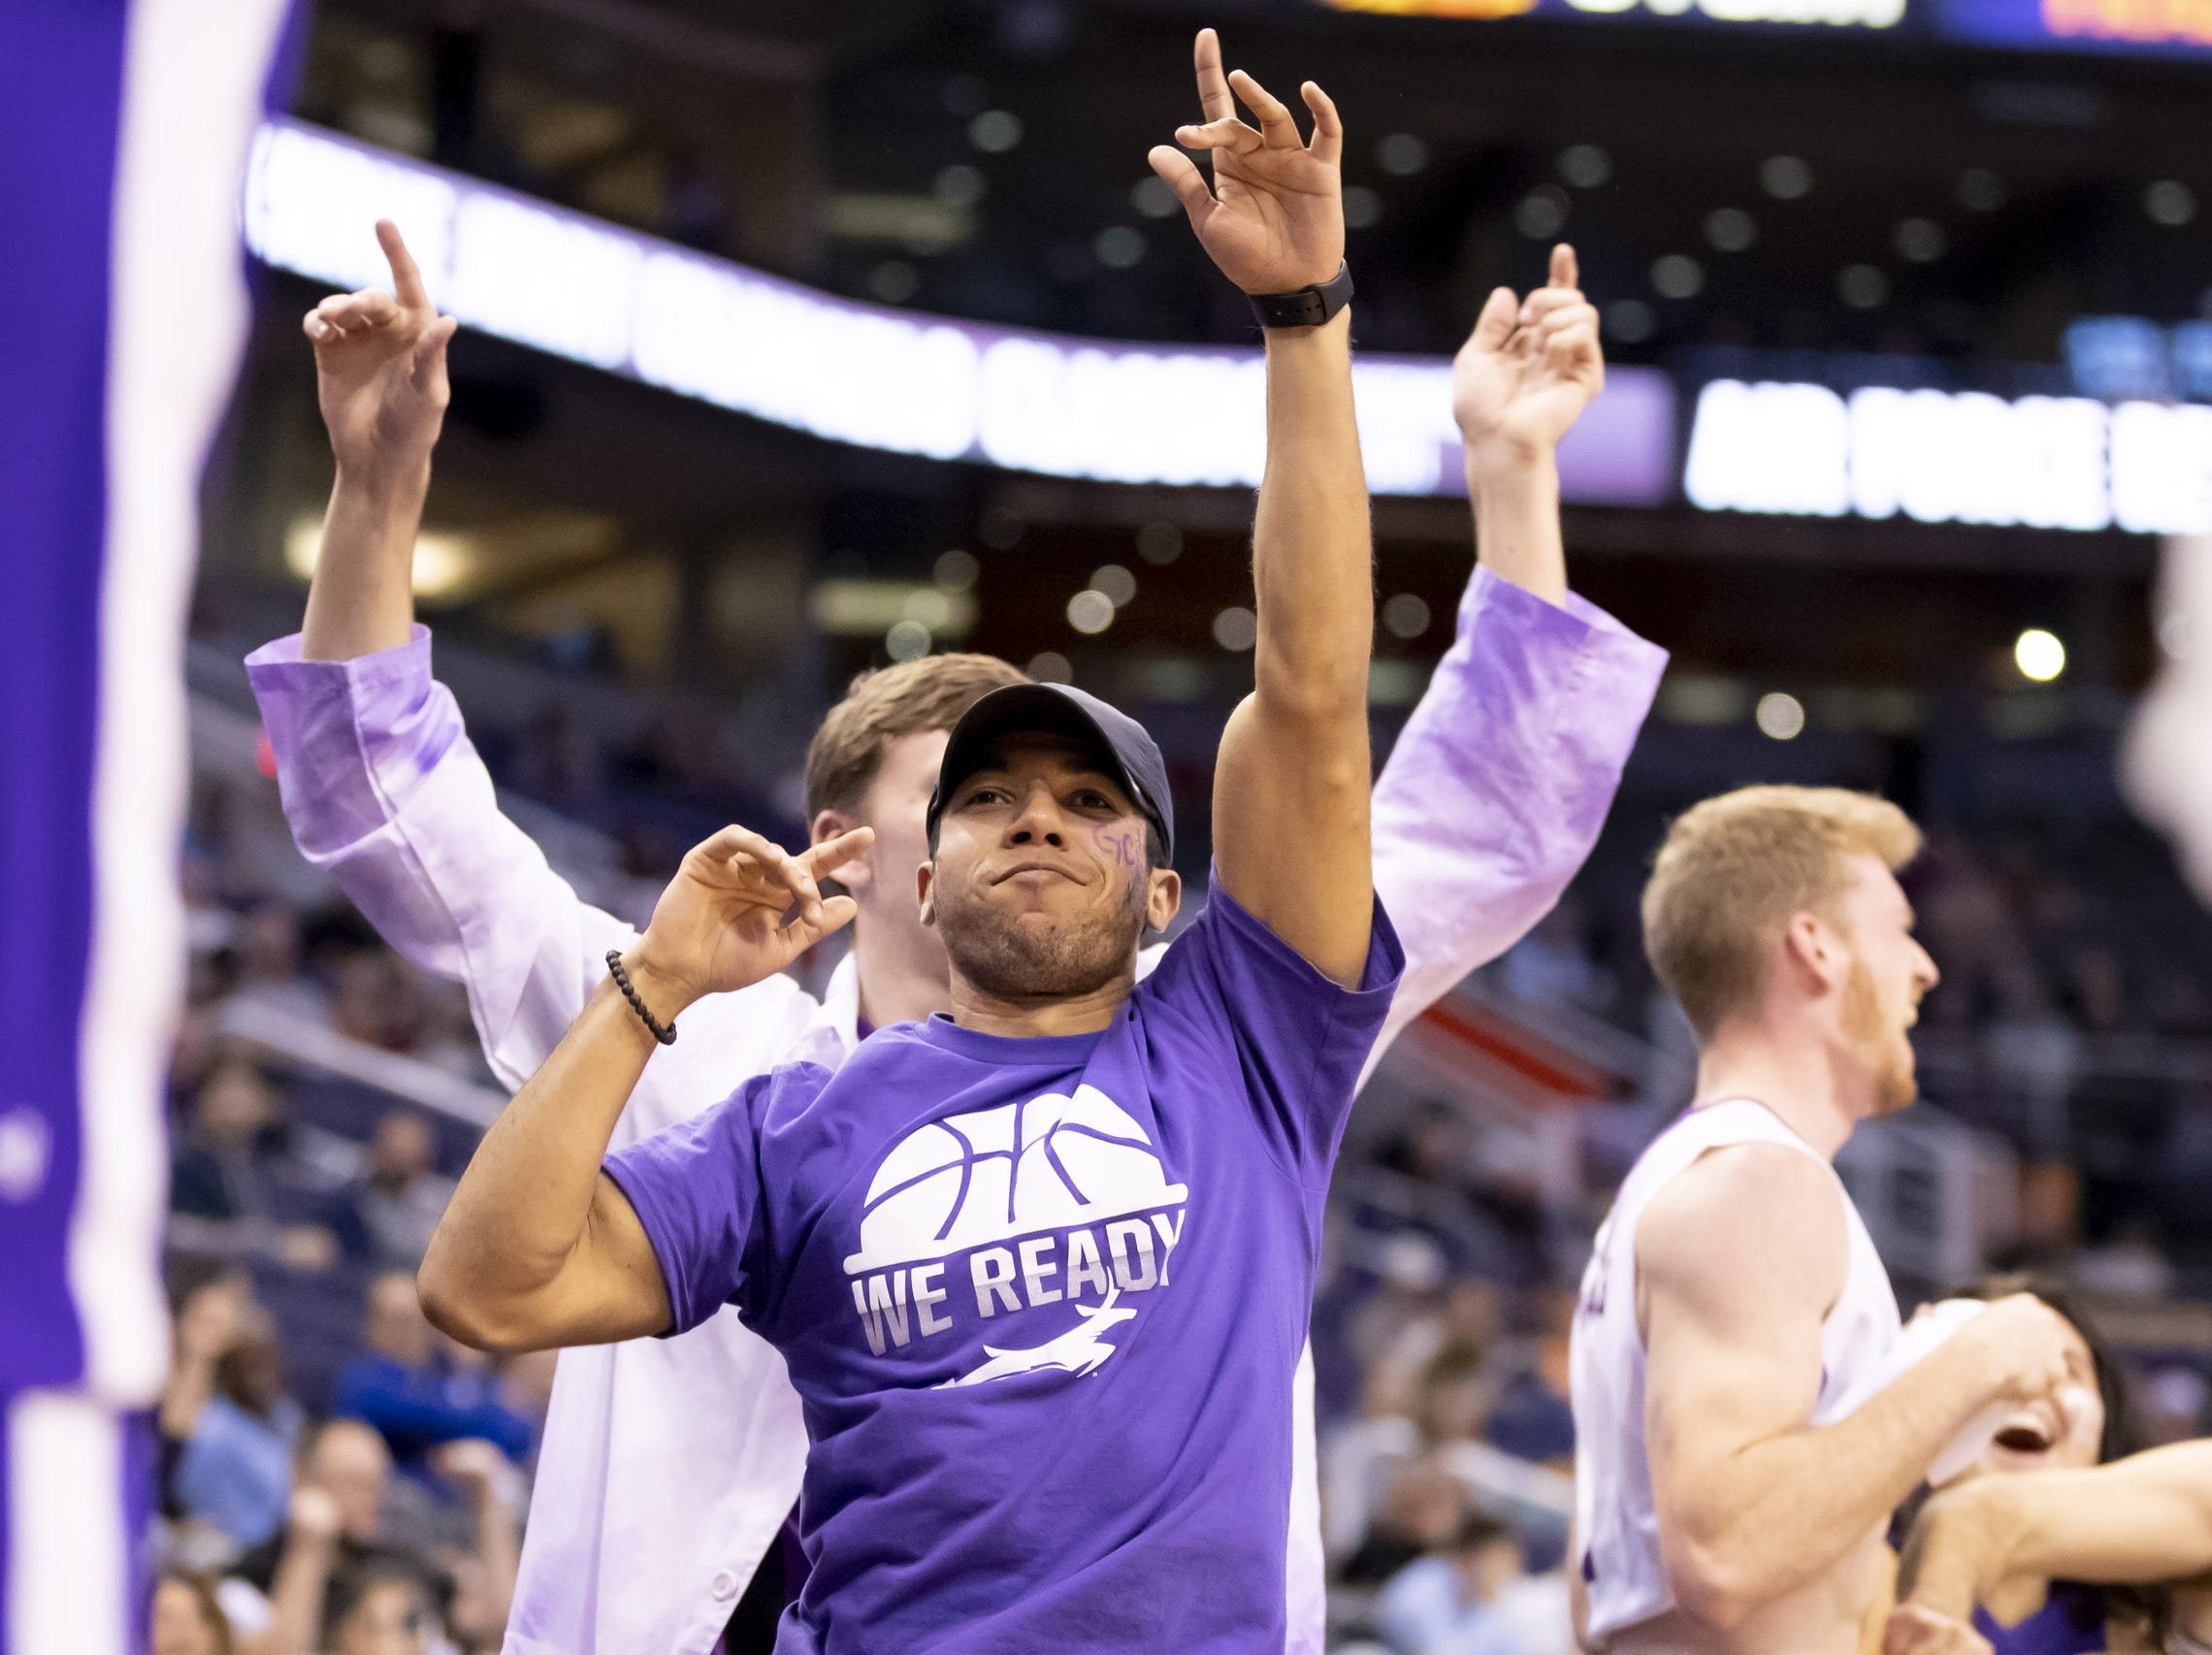 Grand Canyon fans cheer during the 2018 Jerry Colangelo Classic against Nevada Wolf Pack at Talking Stick Resort Arena on Sunday, December 9, 2018 in Phoenix, Arizona.